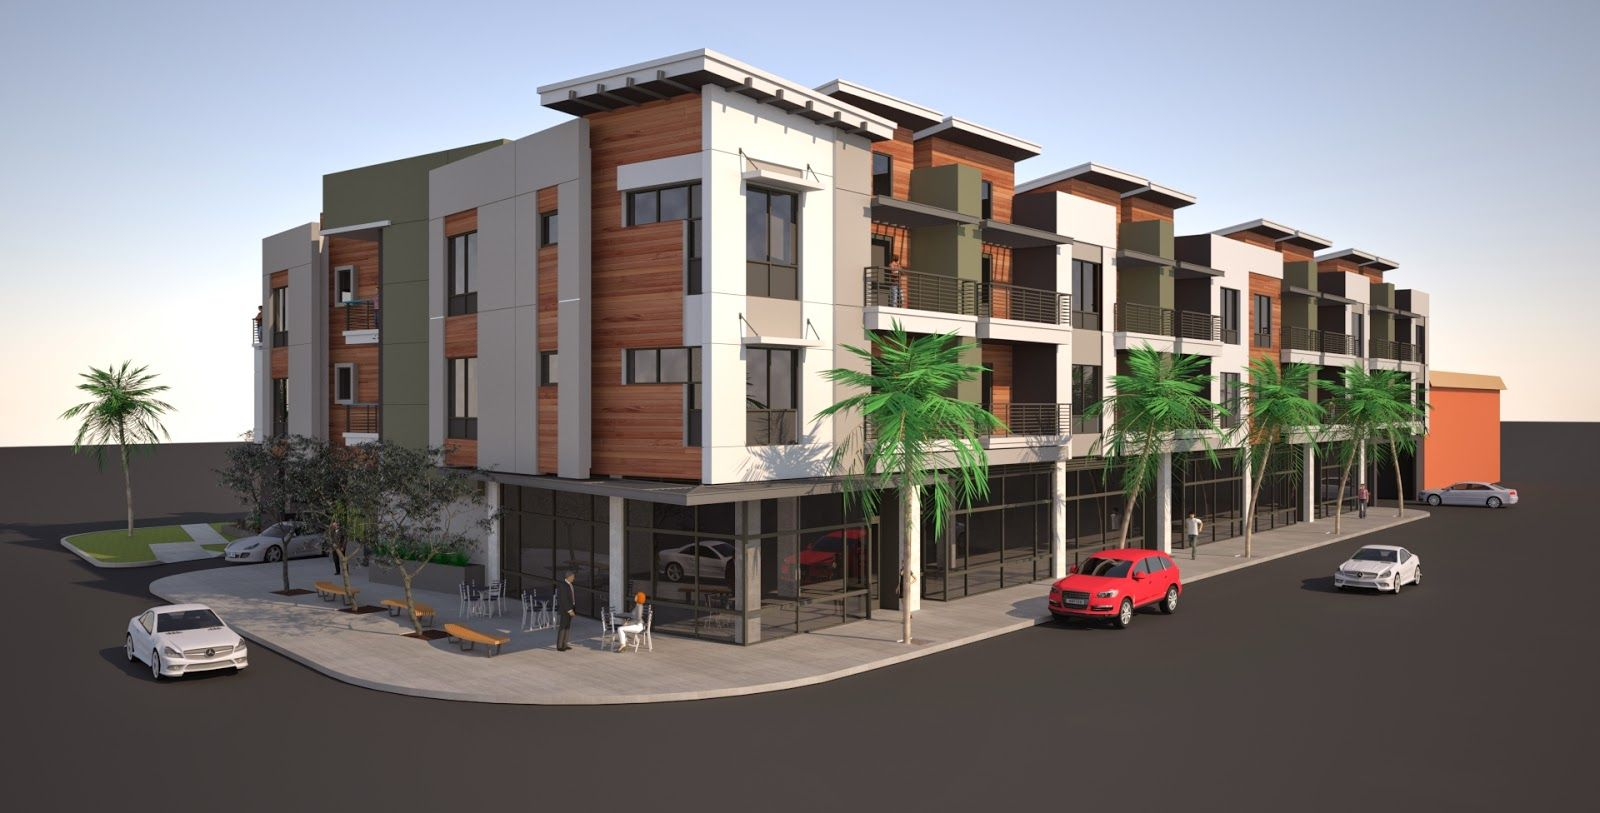 Building Los Angeles Mixed Use Oliver Apartments Rise In Culver City Townhouse Exterior Apartments Exterior Apartment Building